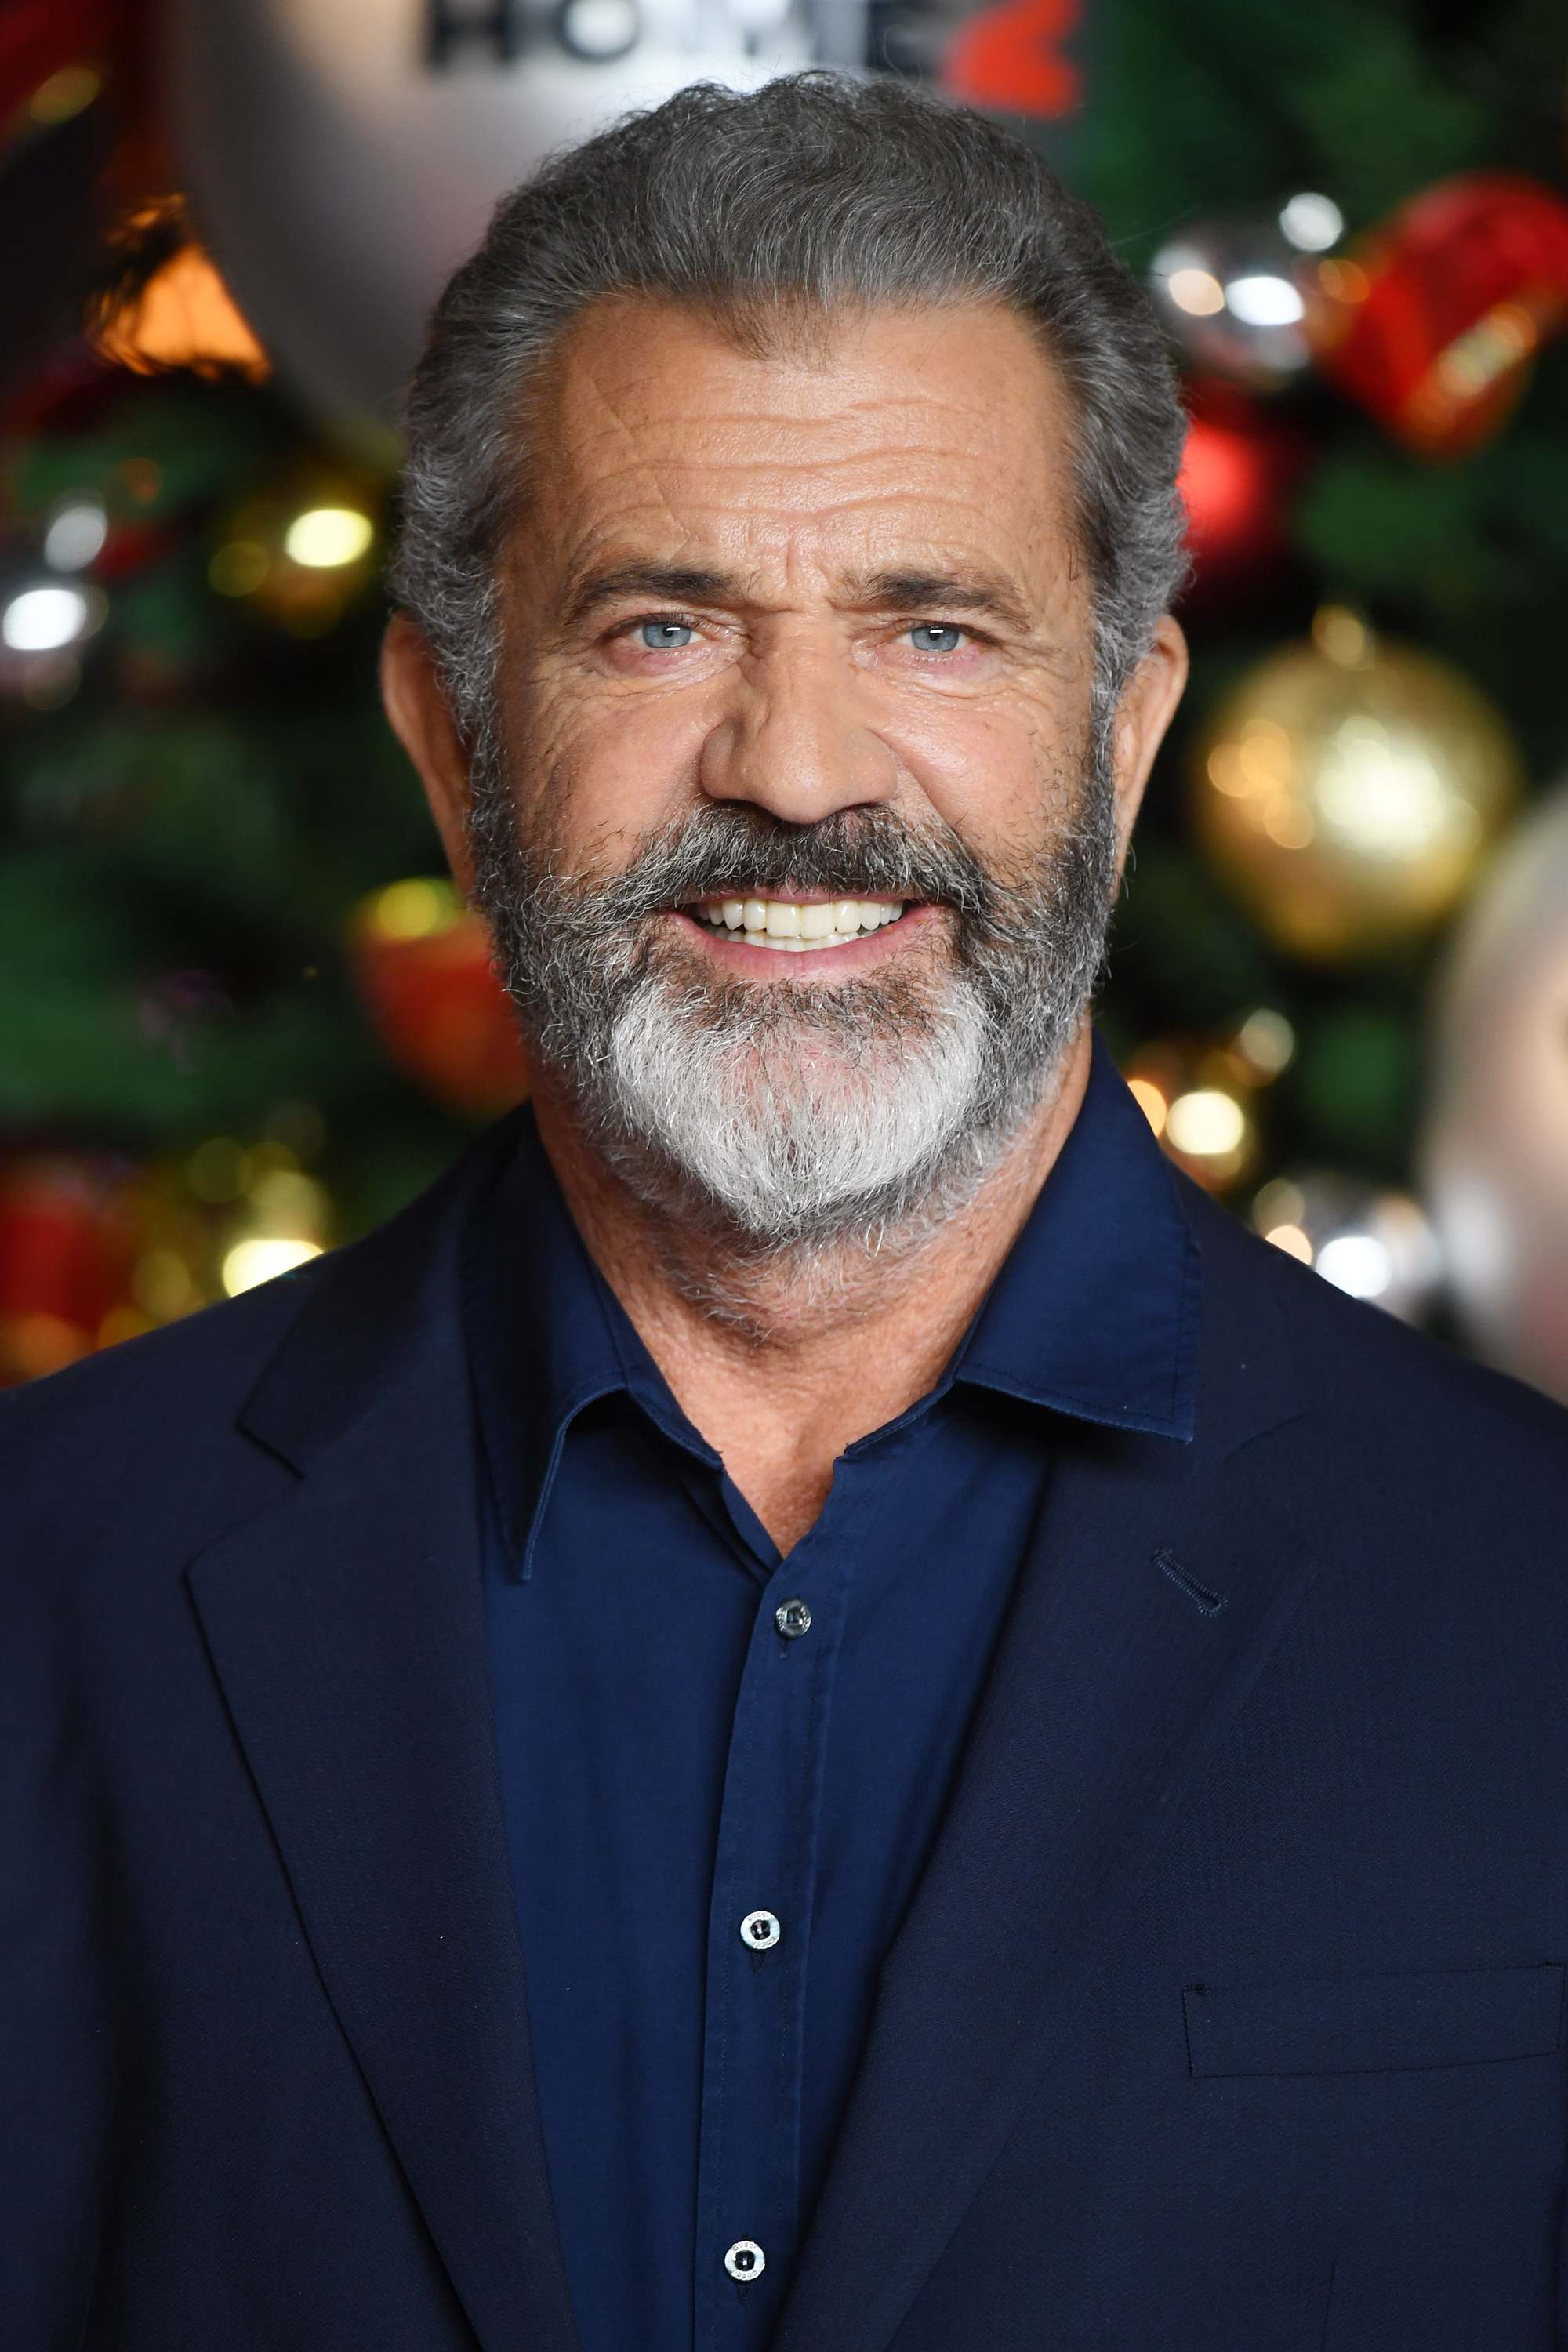 Hairstyles for men over 50: Mel Gibson with salt and pepper hair and full beard wearing a relaxed suit in front of a christmas tree.